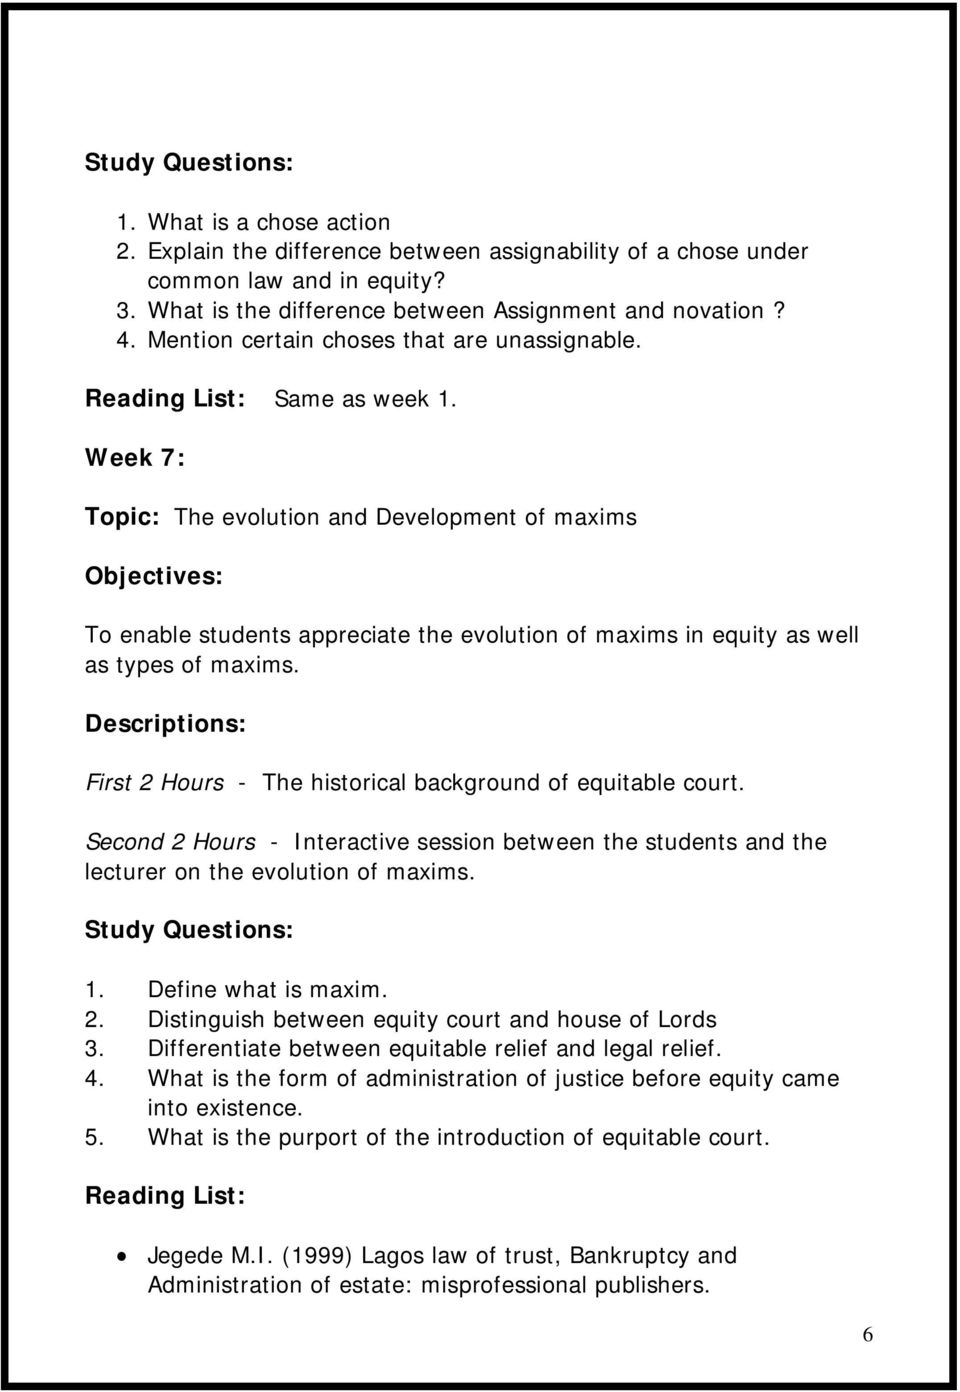 Week 7: Topic: The evolution and Development of maxims Objectives: To enable students appreciate the evolution of maxims in equity as well as types of maxims.